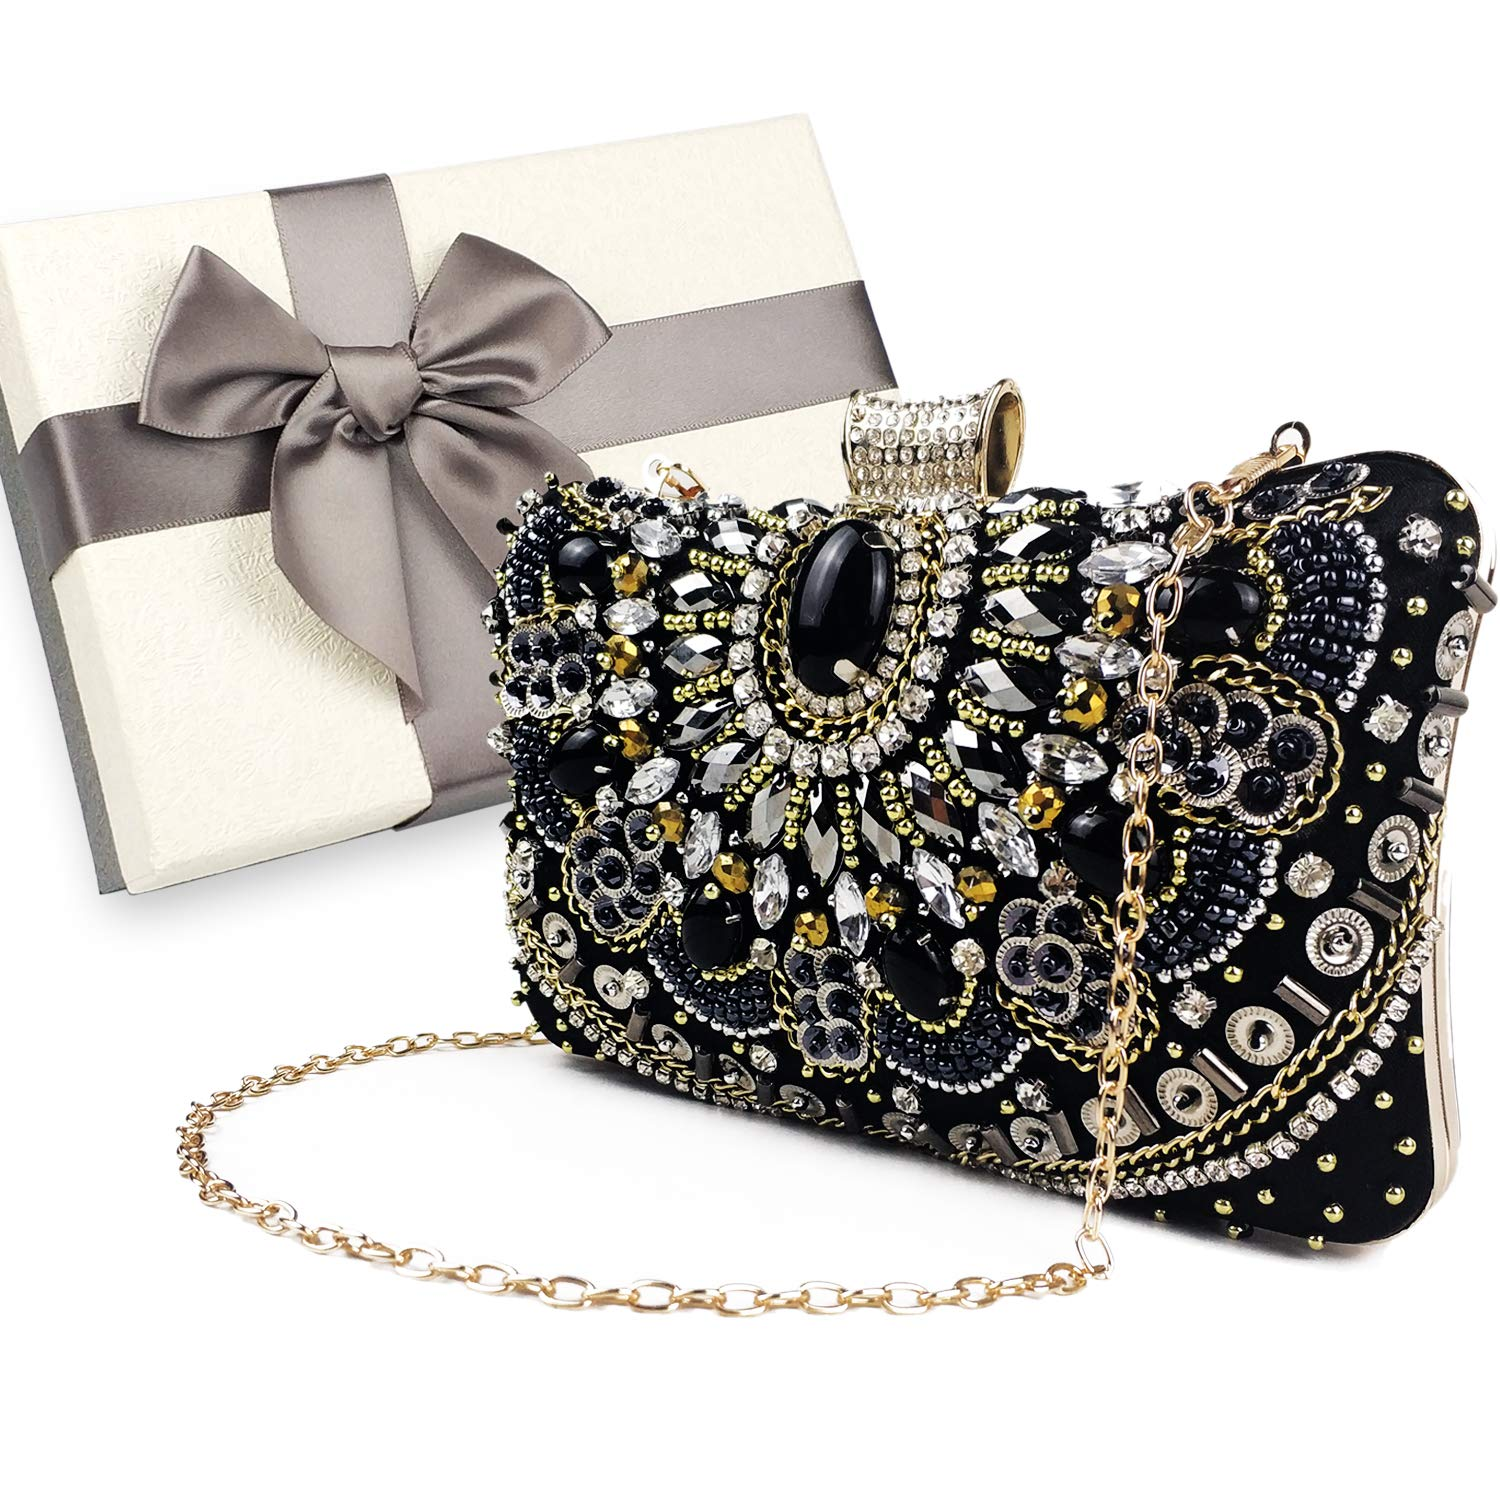 Womens Evening Bag/Clutch,Vintage Handmade Wedding Party Handbag/Purse/Party Bag, Packed in Gift Box(Black-Beaded) by zebrum (Image #1)